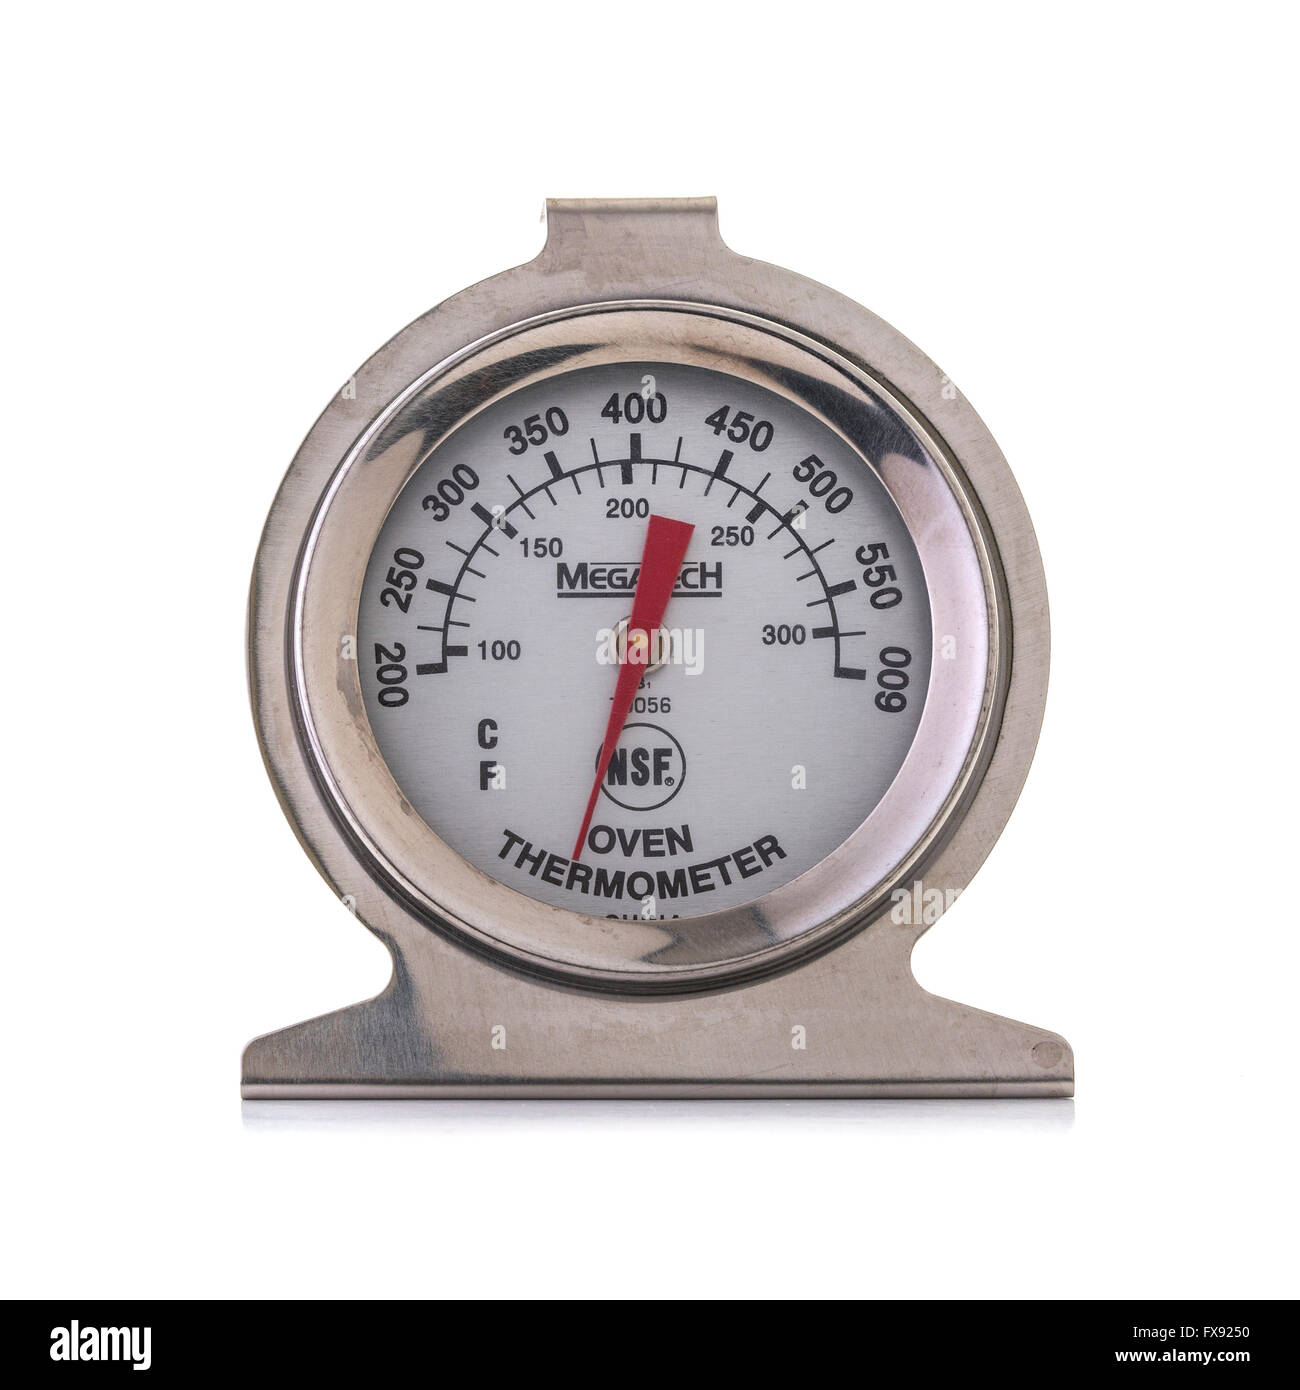 Thermomètre Four À Pain 500 oven thermometer photos & oven thermometer images - alamy